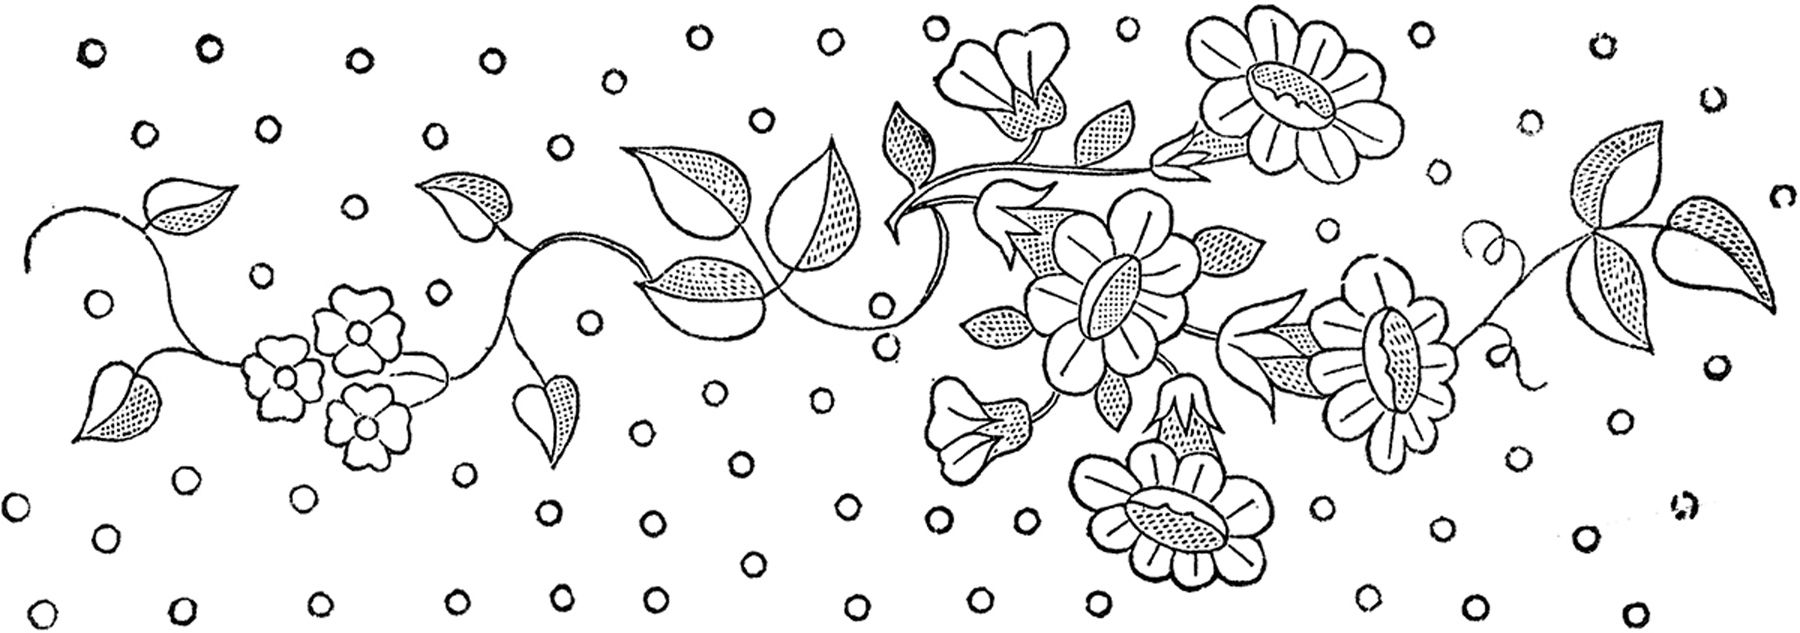 Floral-Embroidery-Pattern-GraphicsFairy.jpg (1800×633) | Floral ...